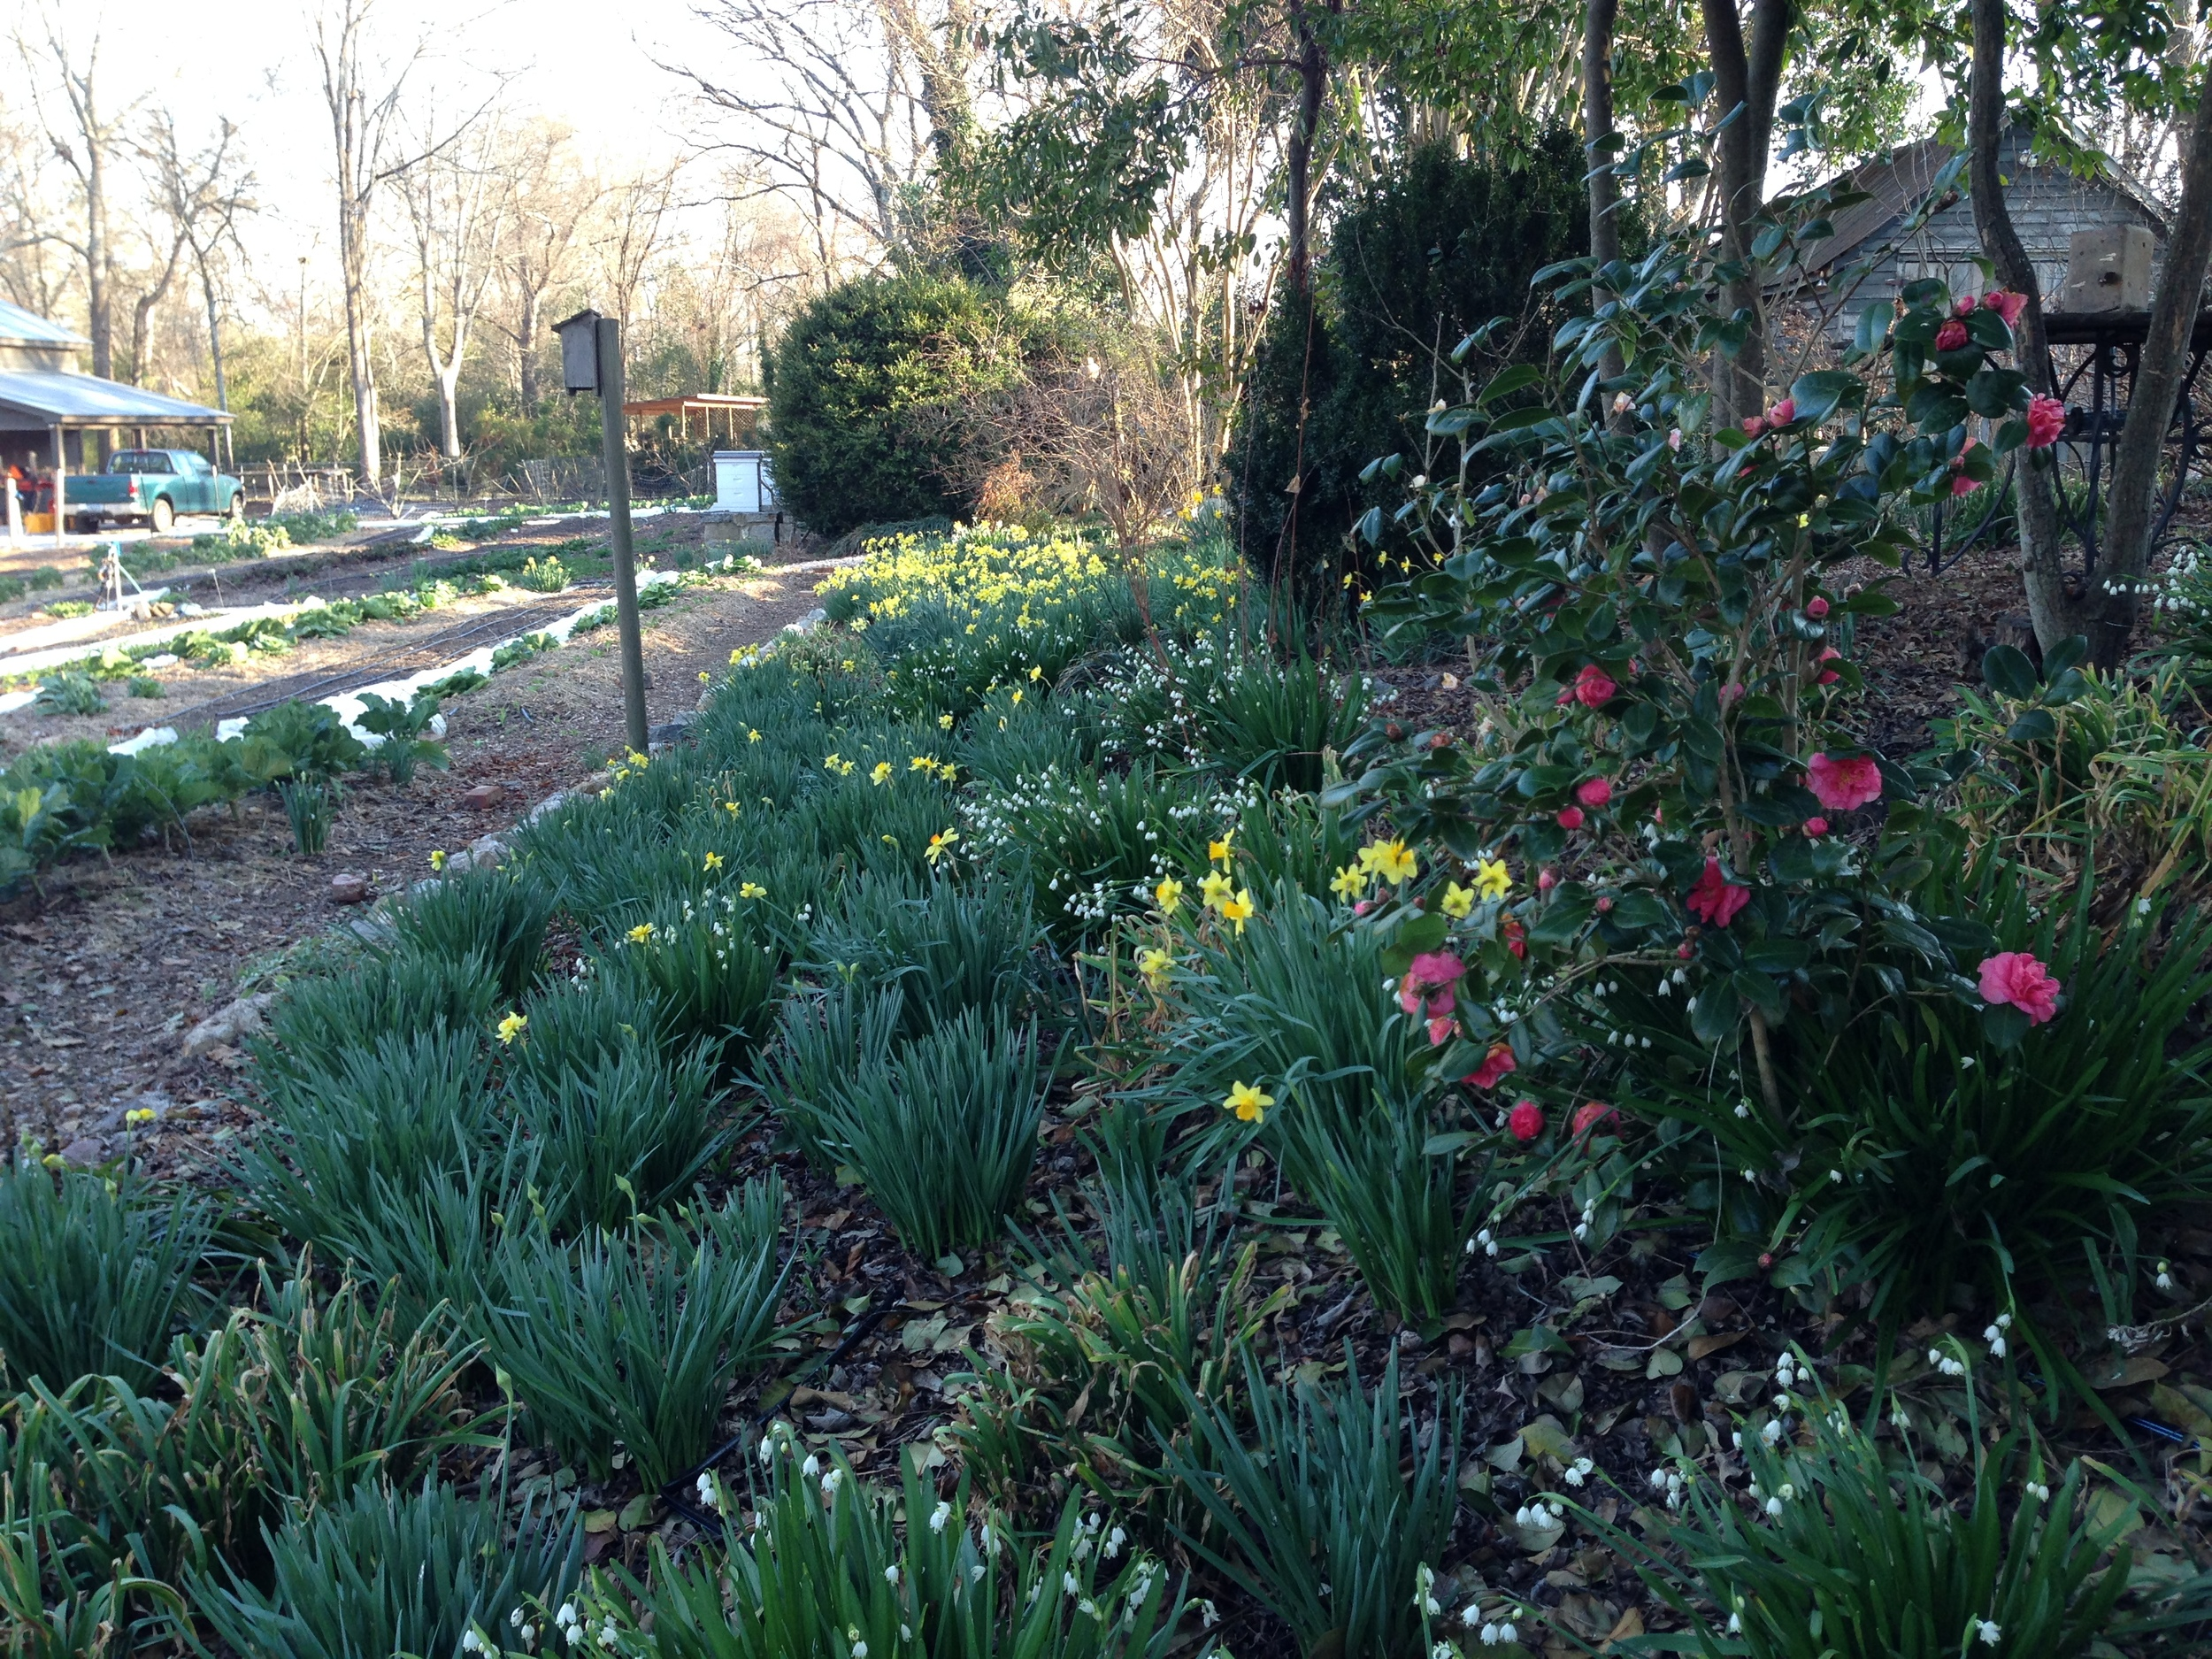 The bulbs on the flower bank start to show their spring colors.